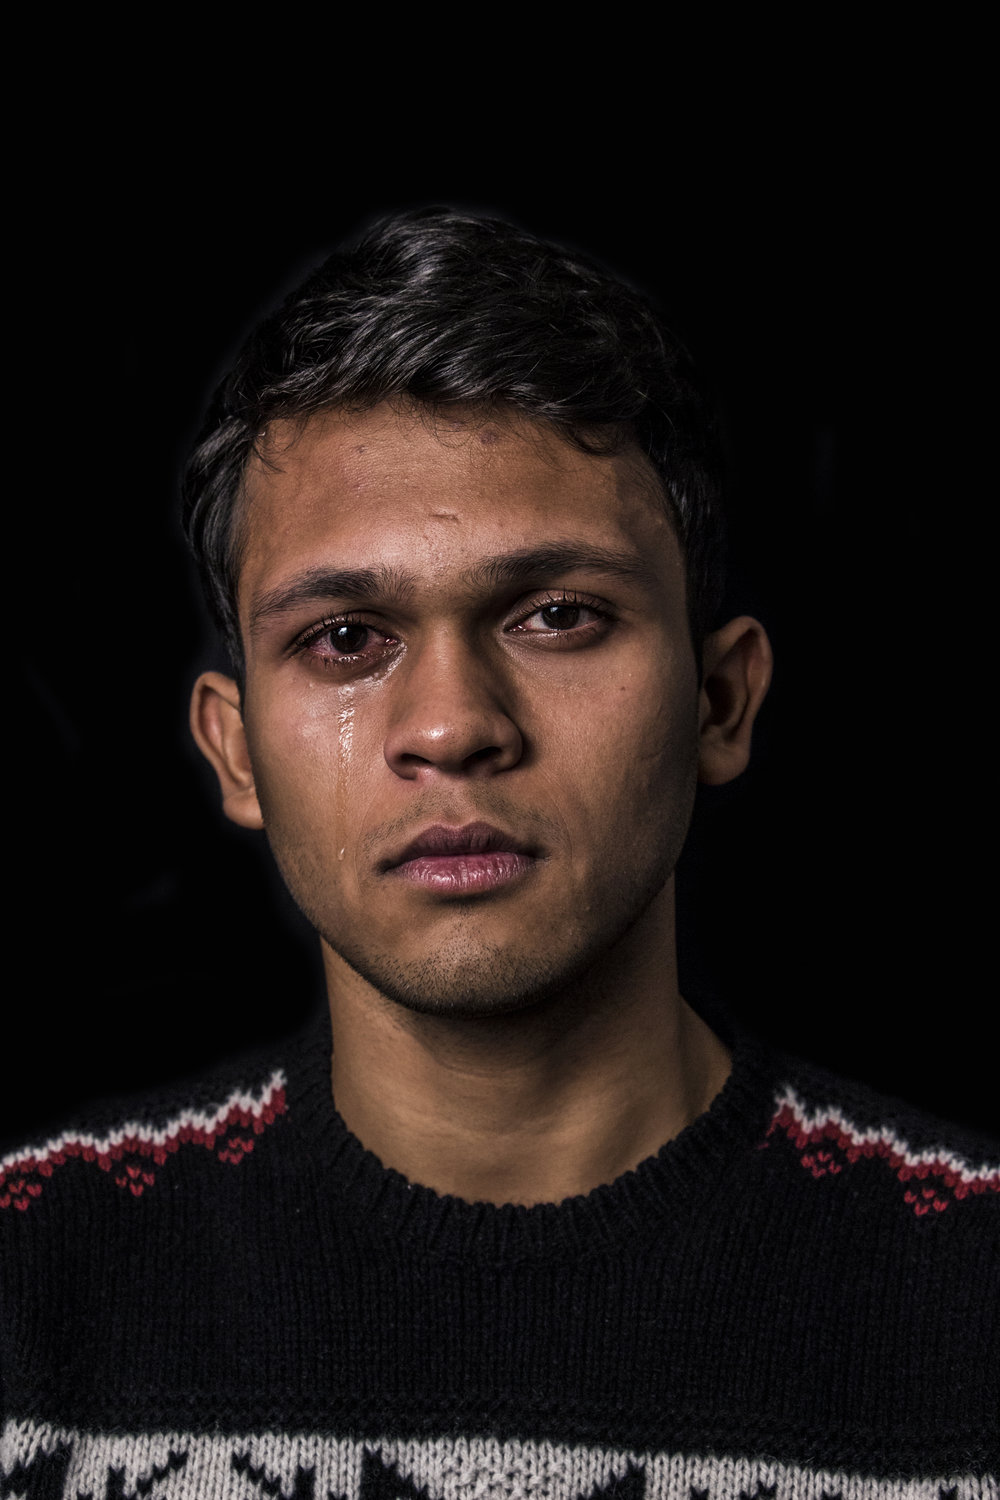 Aditya (19)   I used to see myself as strong because I did not cry; now I feel weak because I cannot cry.